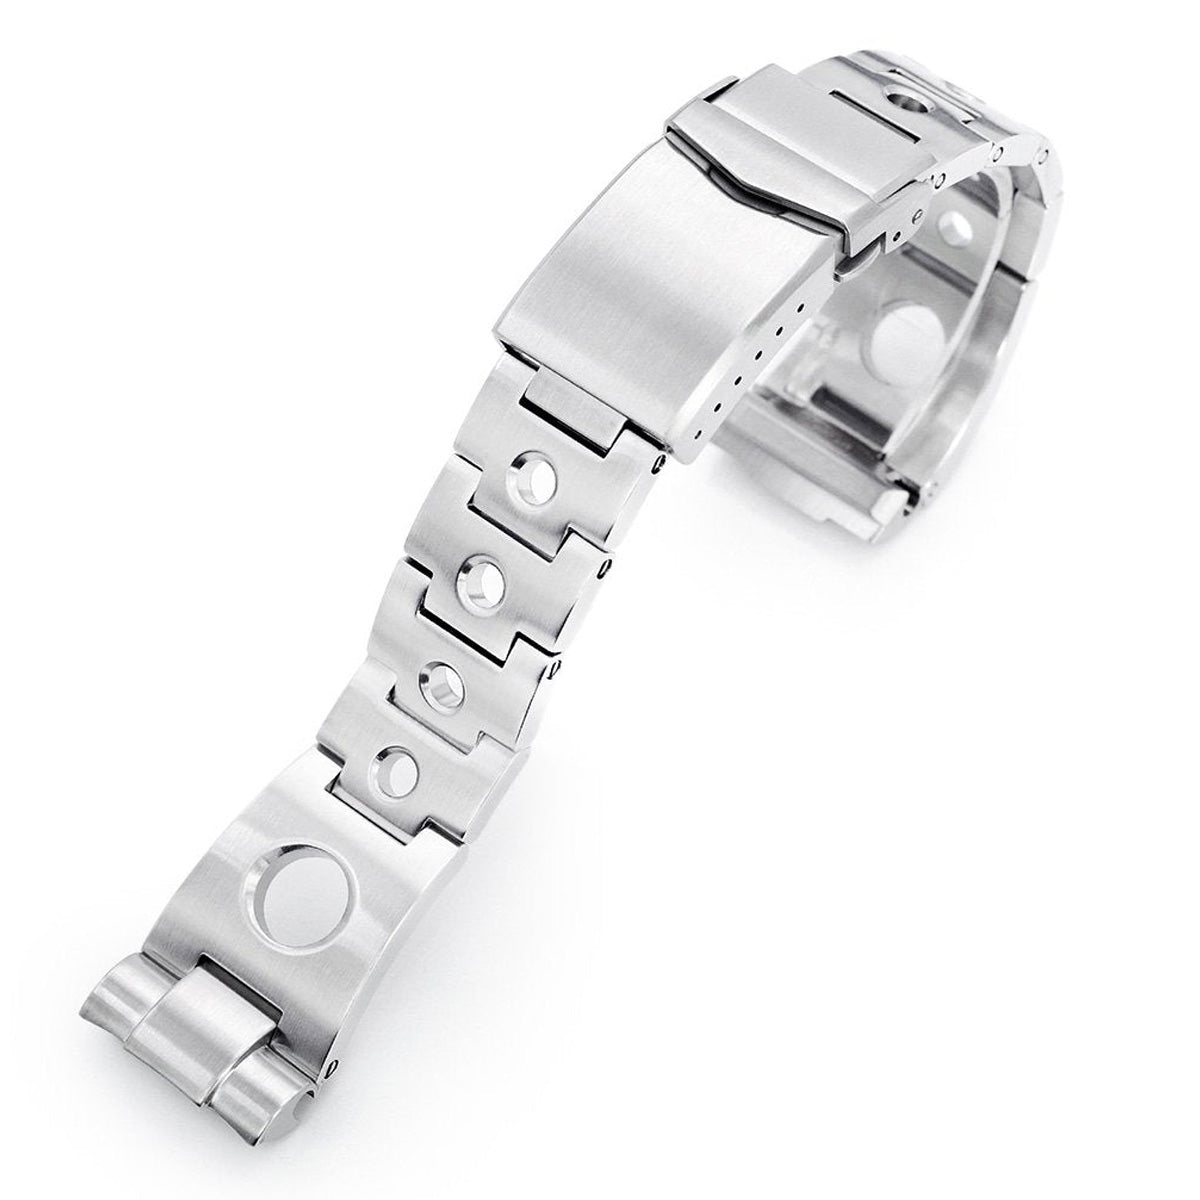 22mm Rollball 316L Stainless Steel Watch Bracelet for Seiko New Turtles SRP777 Brushed V-Clasp Strapcode Watch Bands